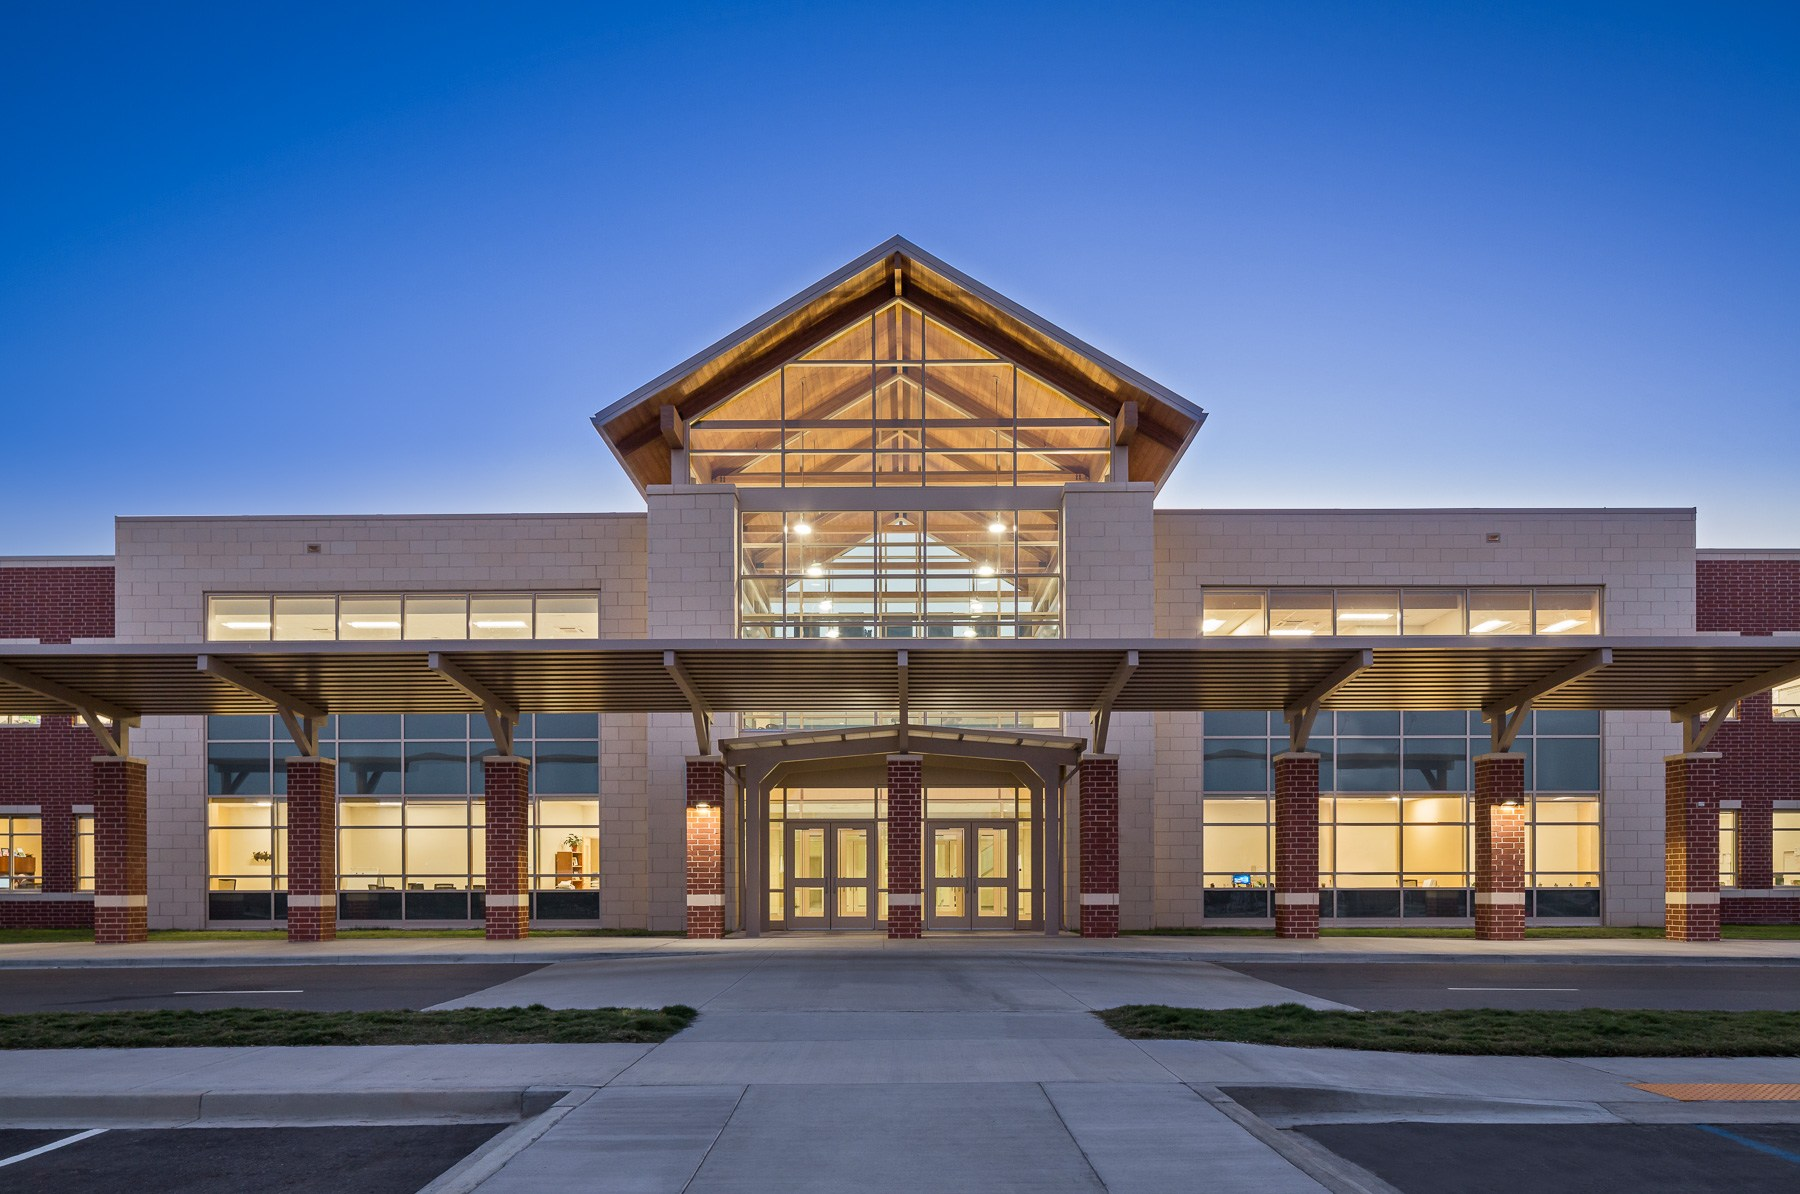 Cayce Elementary - Front Entrance and Student Drop Area at Night